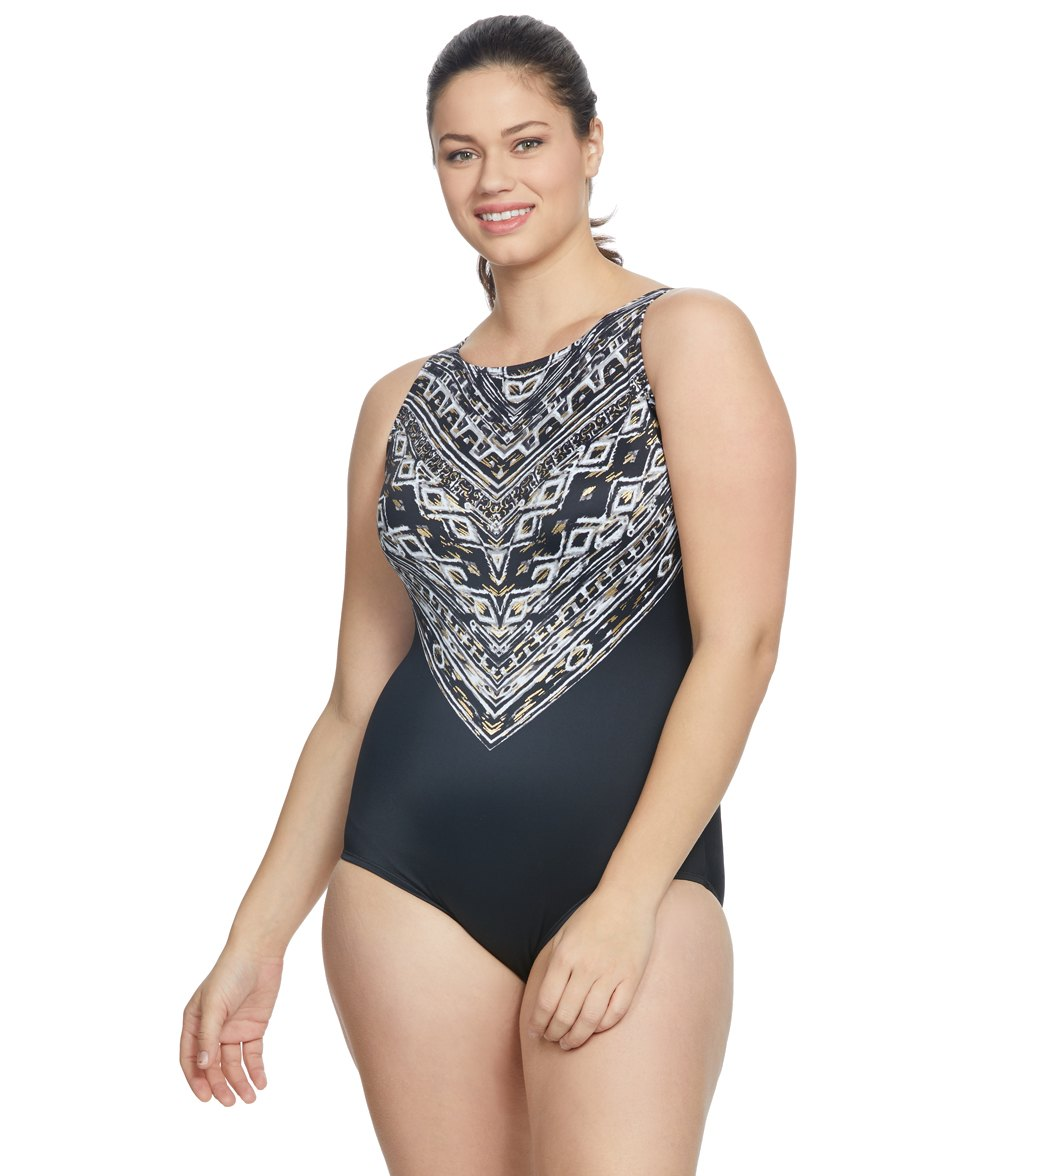 84439fee5b237 Longitude Plus Size Mazunte High Neck One Piece Swimsuit at SwimOutlet.com  - Free Shipping